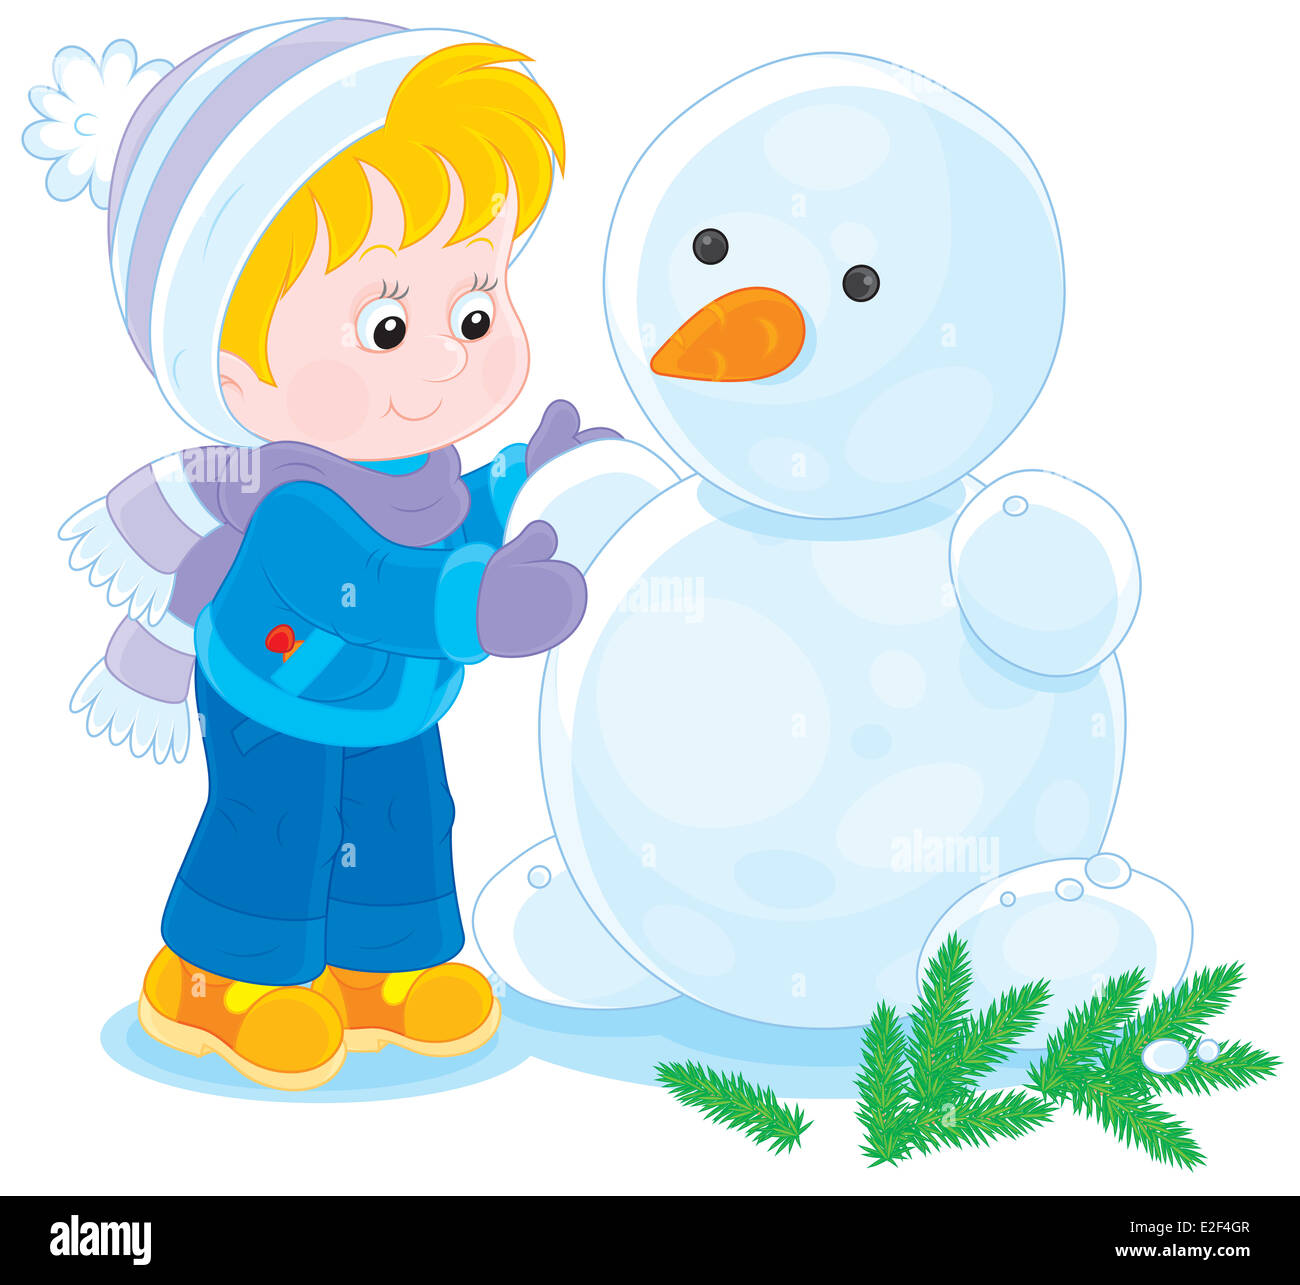 Little boy or girl making a funny snowman - Stock Image